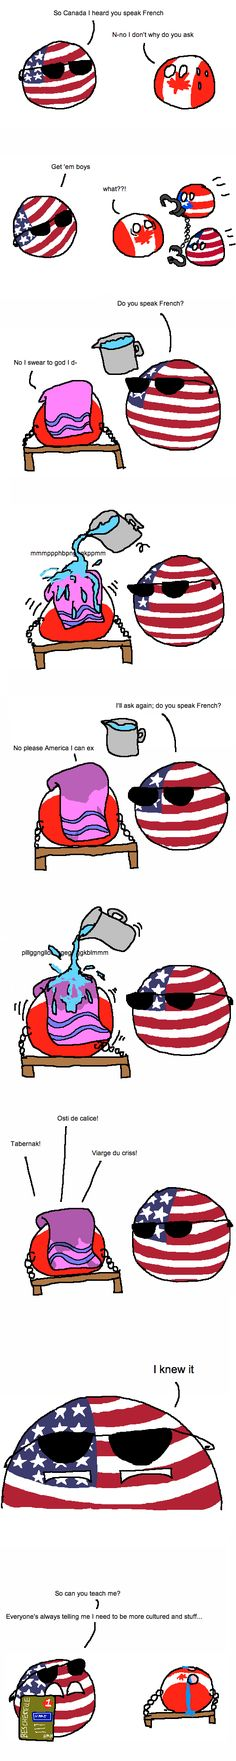 French #countryballs #canadaball #muricaball